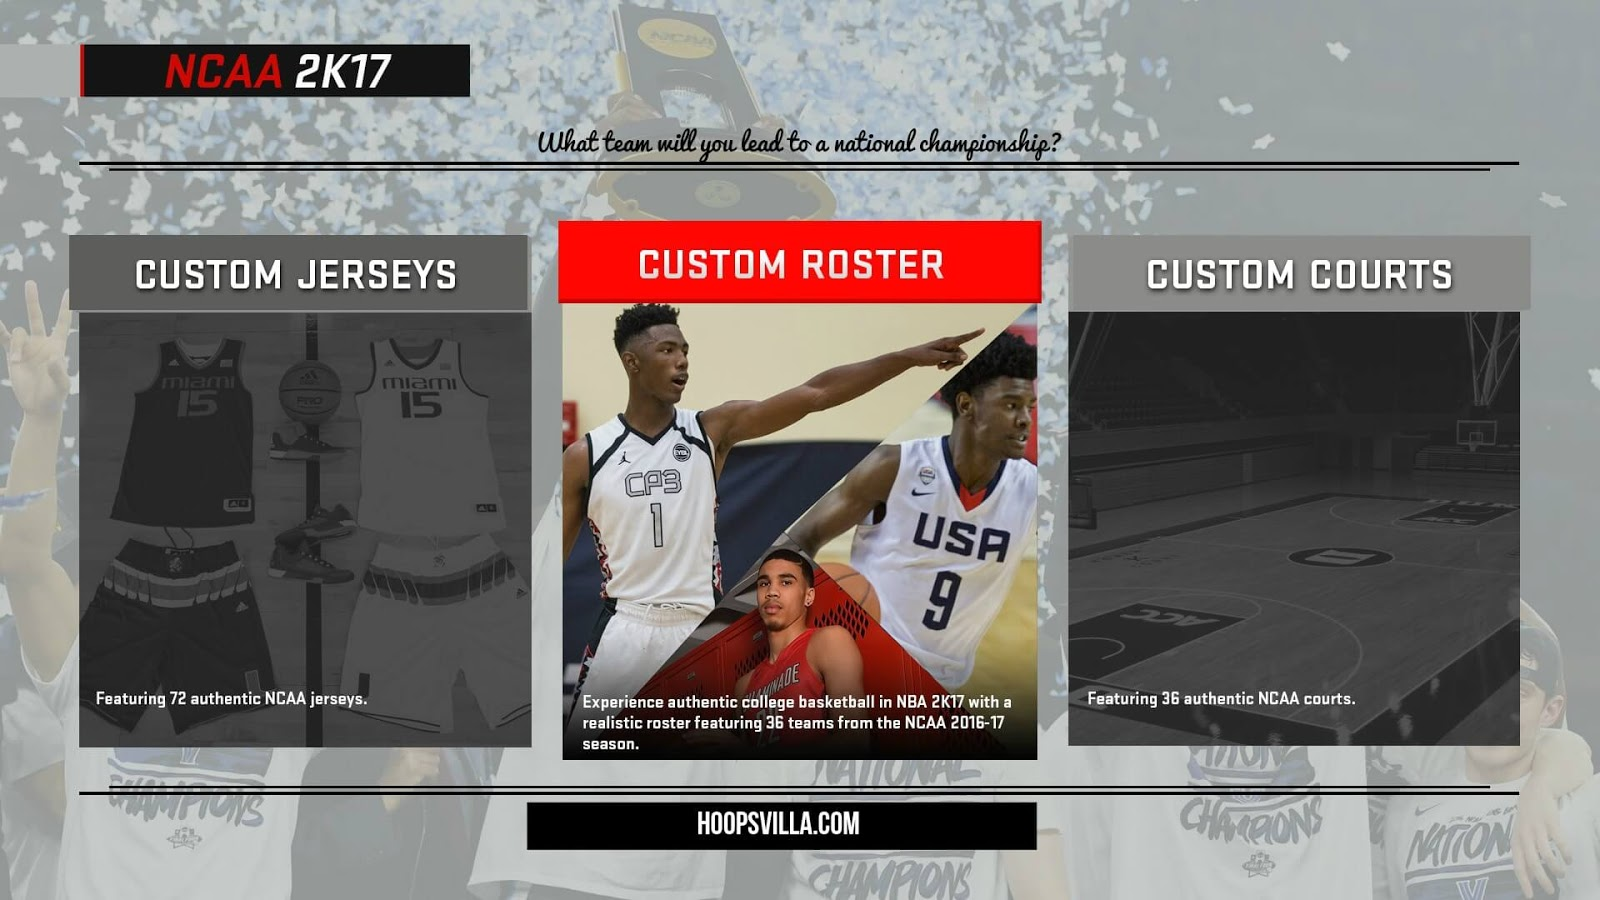 How to Play College basketball in NBA 2k17 : NCAA 2k17 Custom Roster (PS4) - HoopsVilla